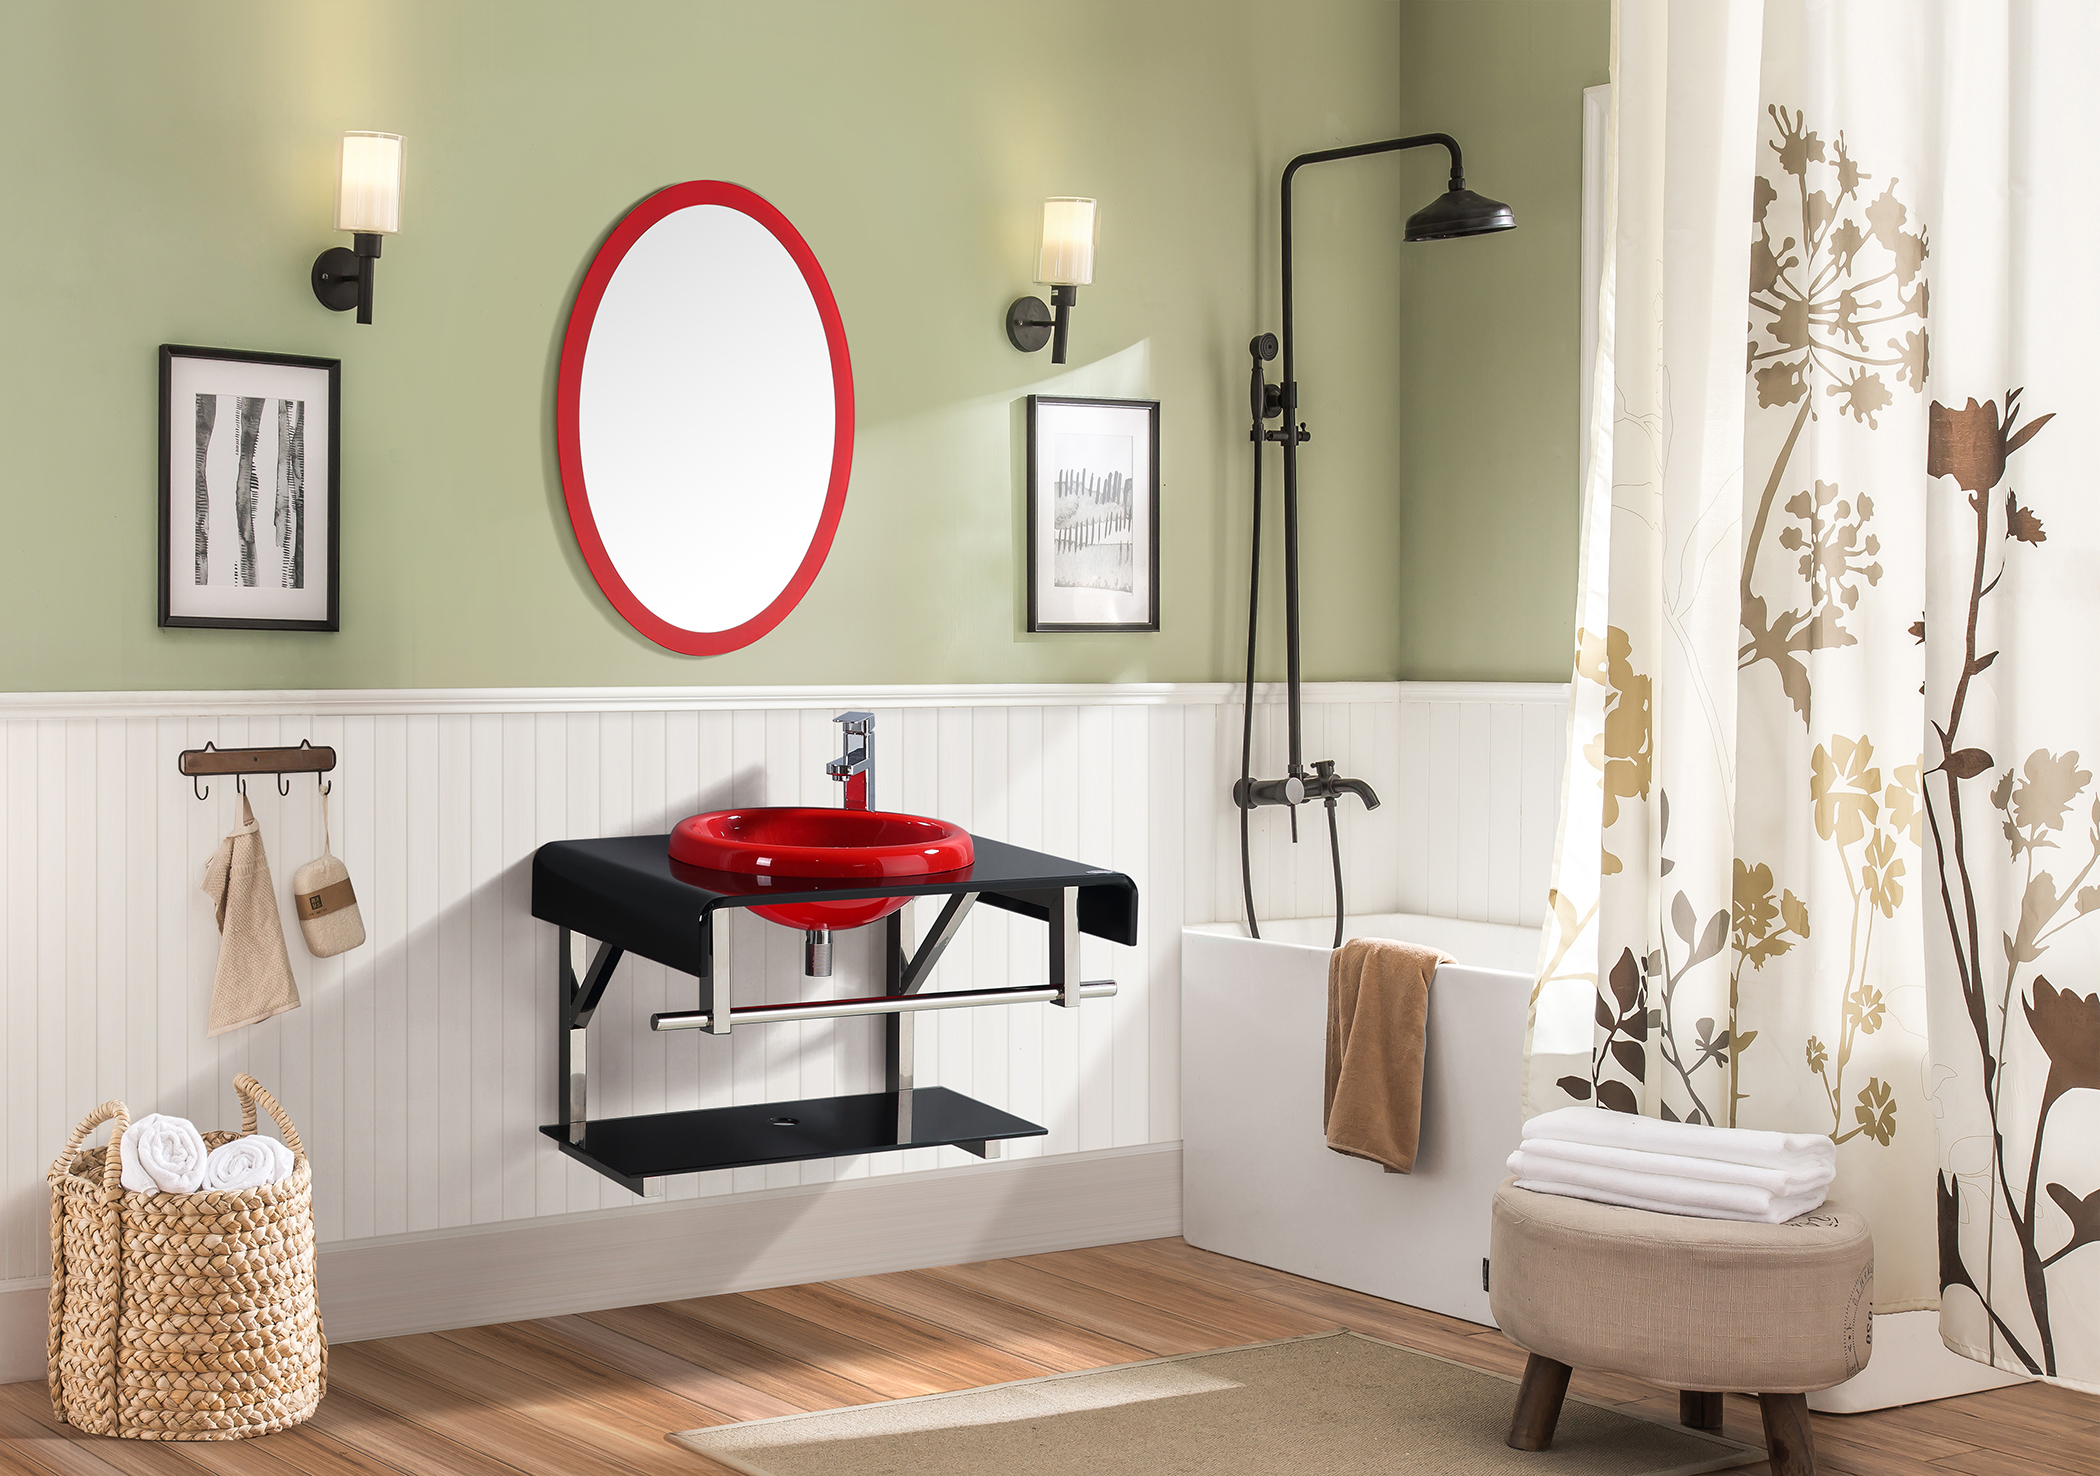 Vibes Bath Vanity in Black & red Colour by HomeTown